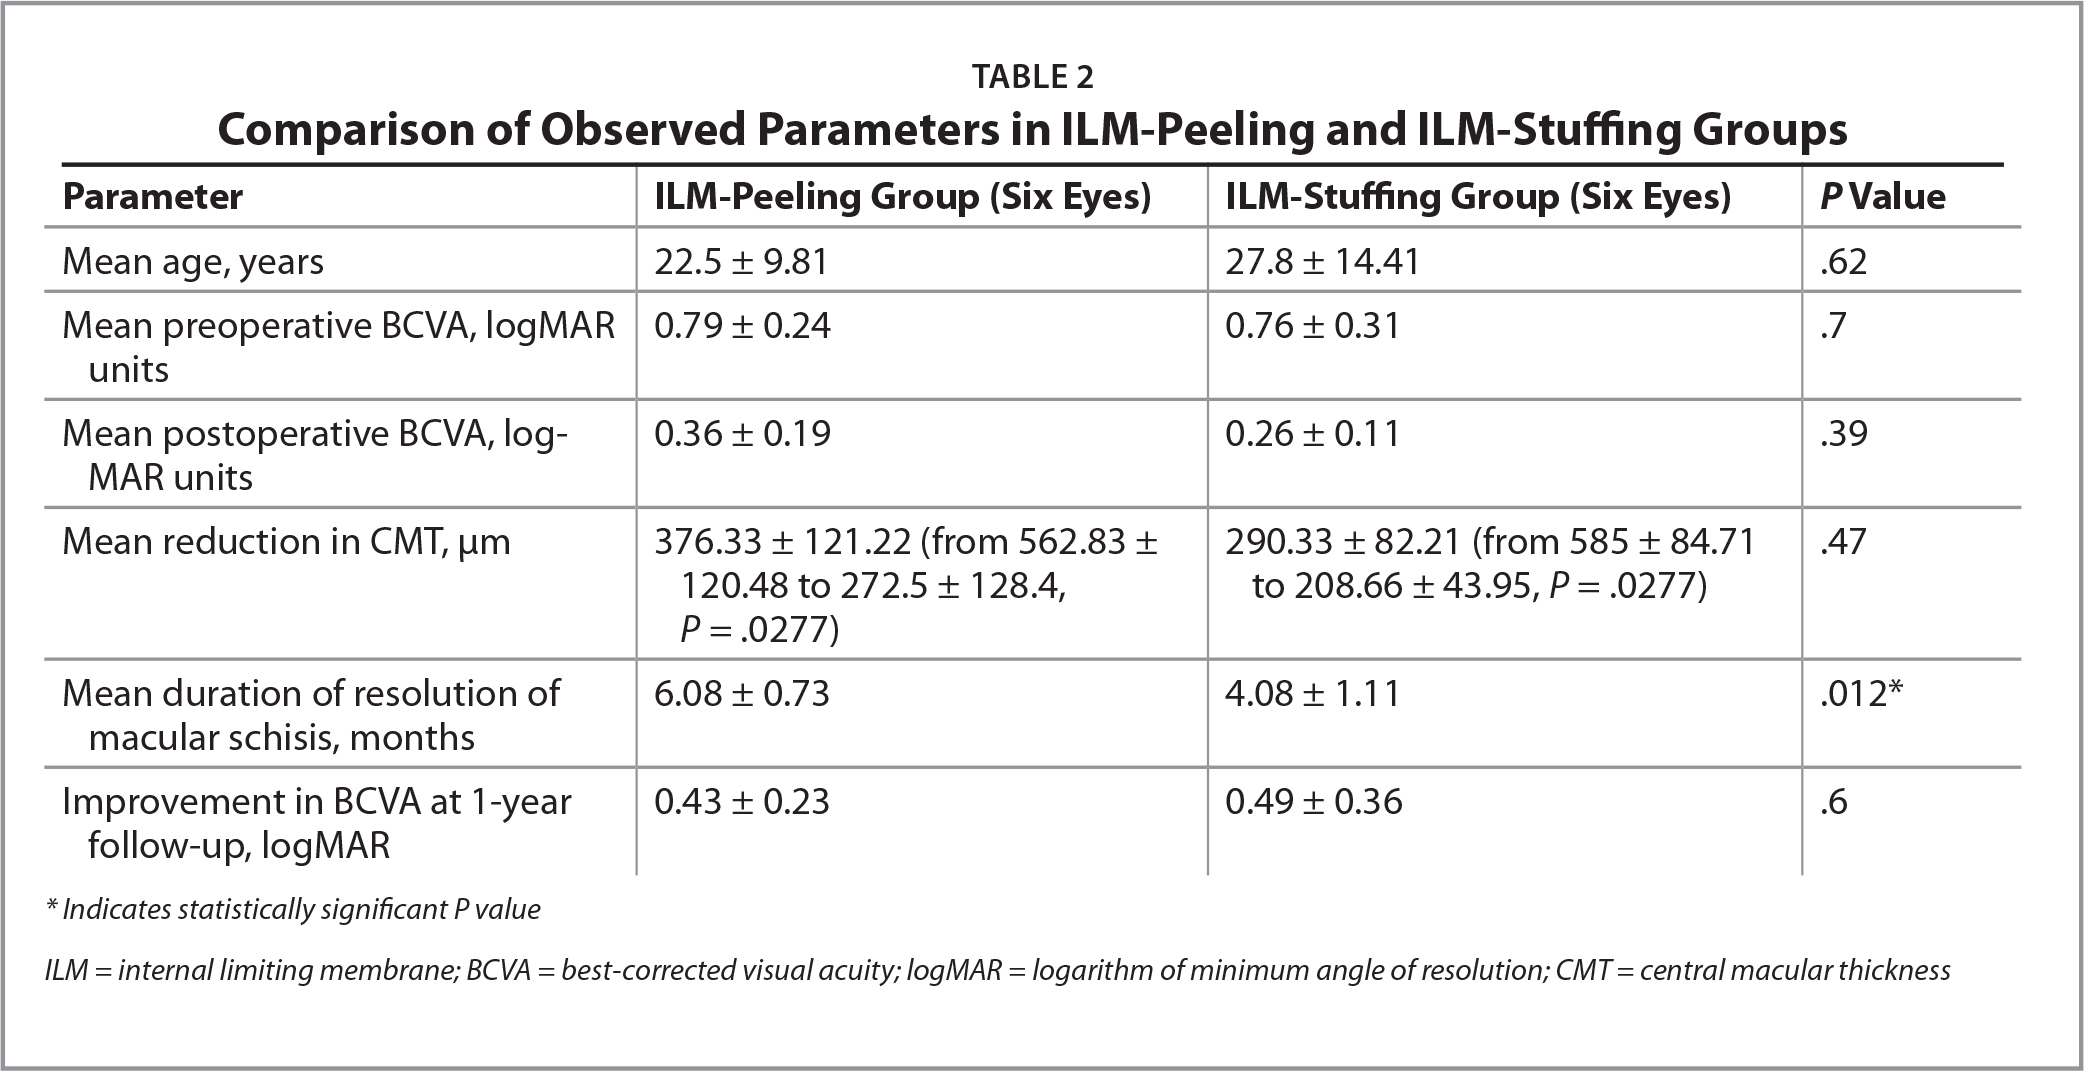 Comparison of Observed Parameters in ILM-Peeling and ILM-Stuffing Groups